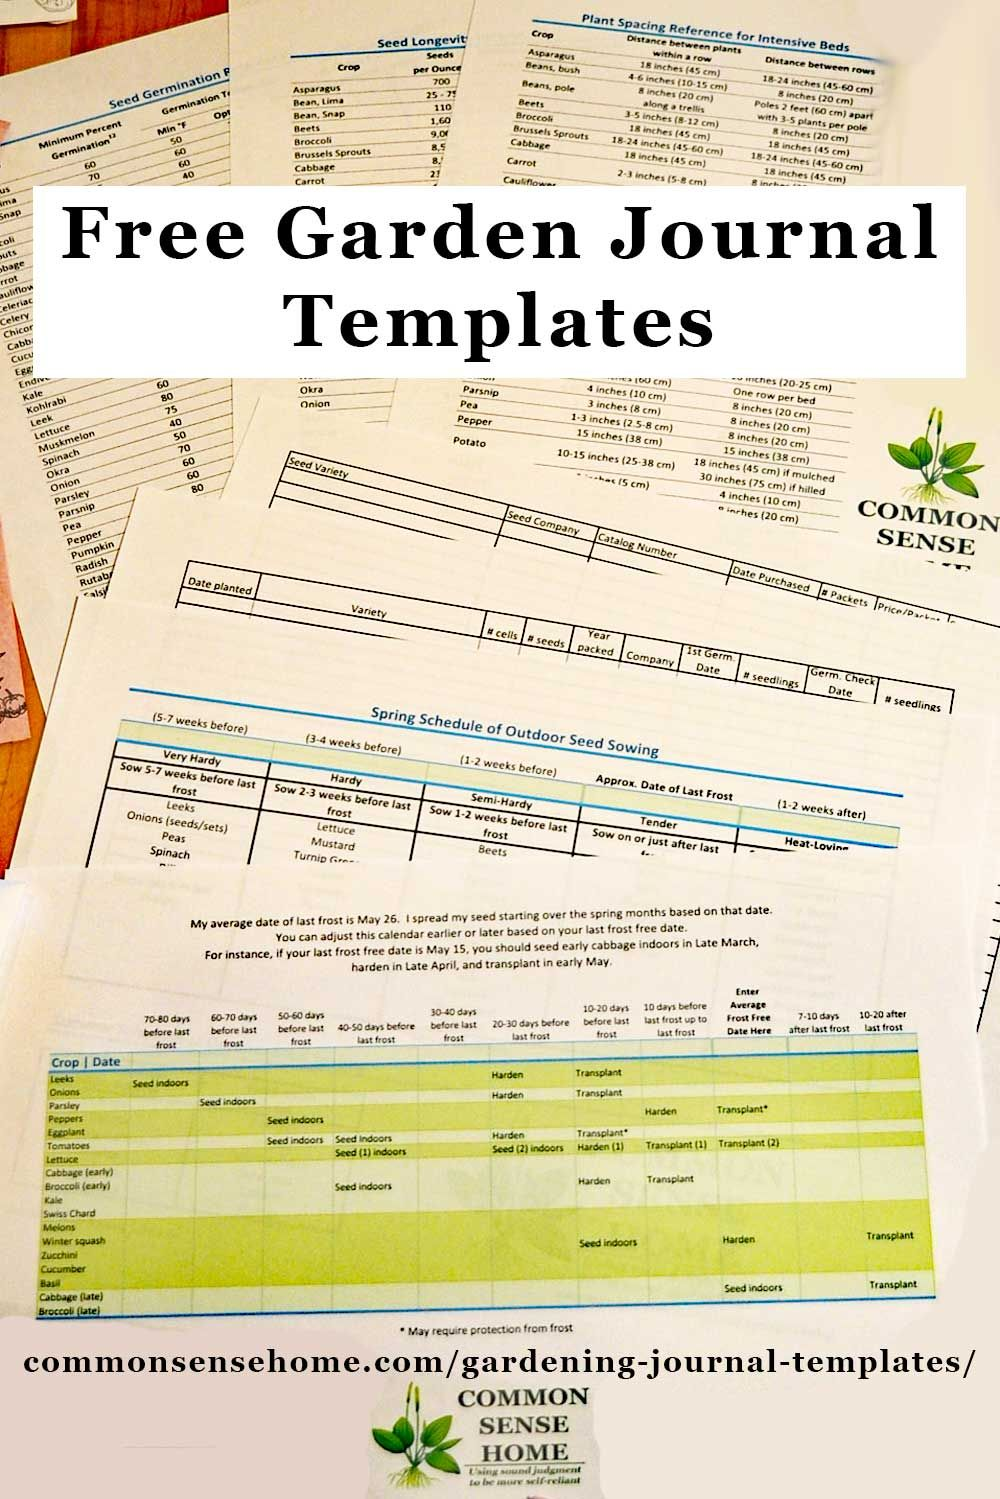 Free Gardening Journal Templates And Other Garden Record Keeping Tips Garden Journal Template Garden Journal Gardening Journal Printables